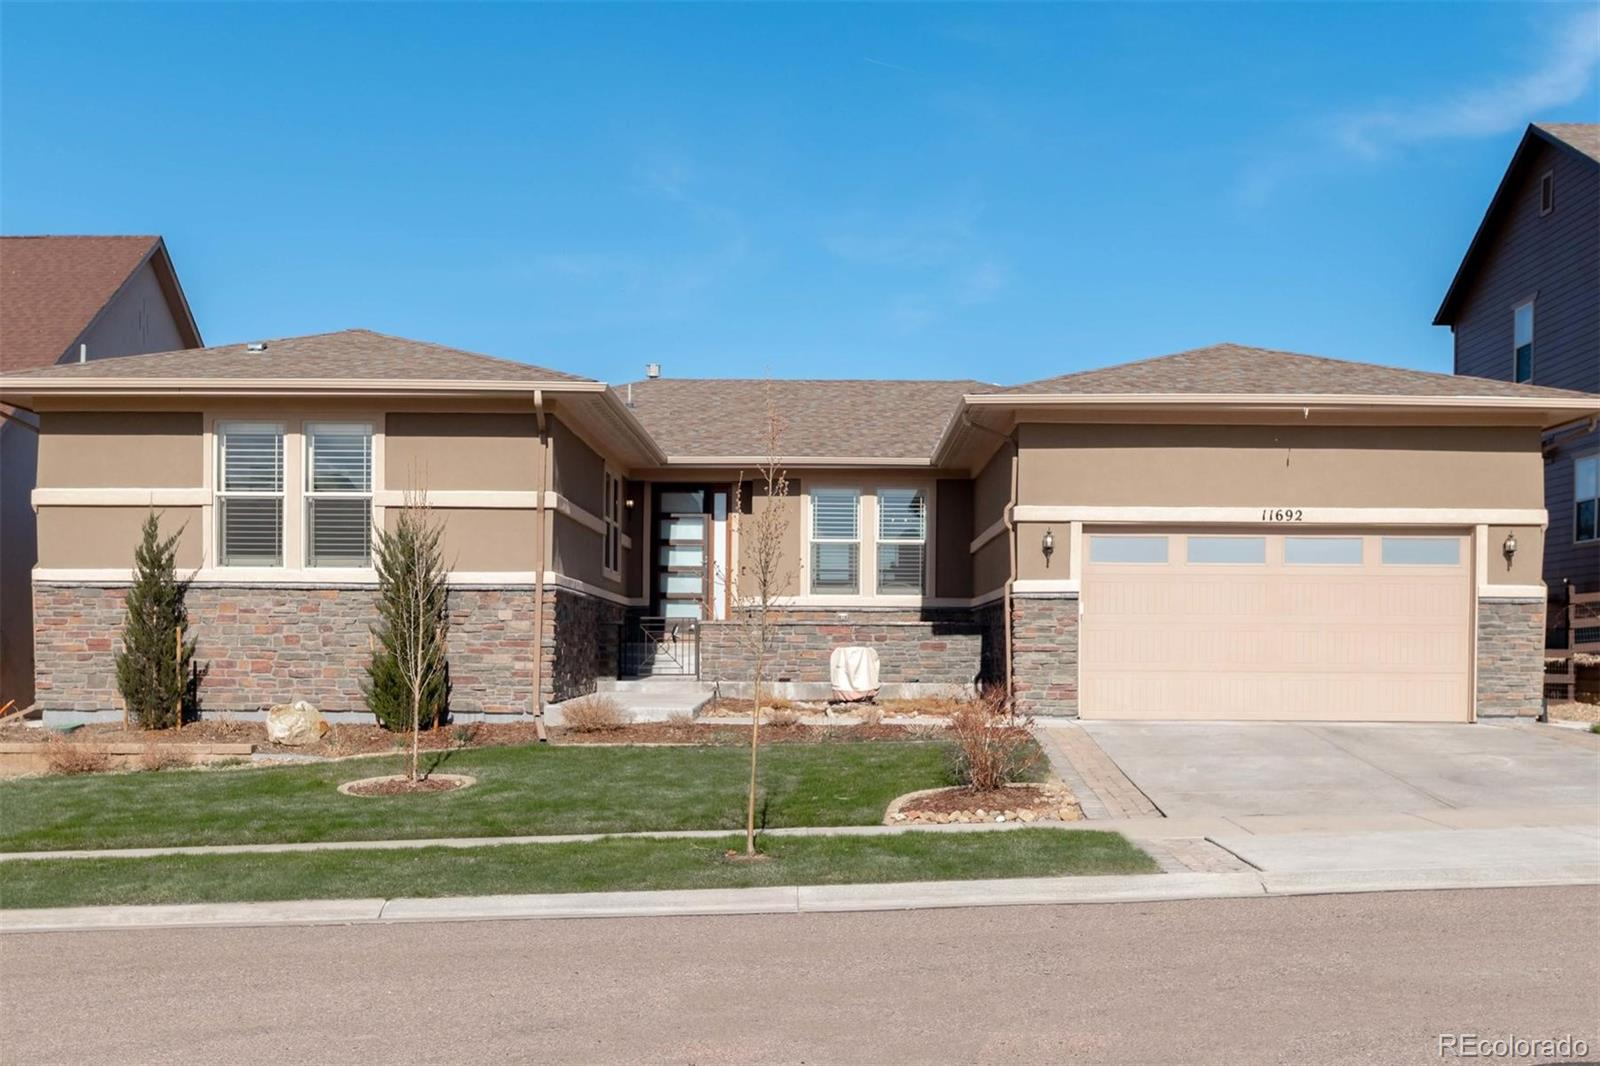 MLS# 5498200 - 38 - 11692 Spotted Street, Parker, CO 80134